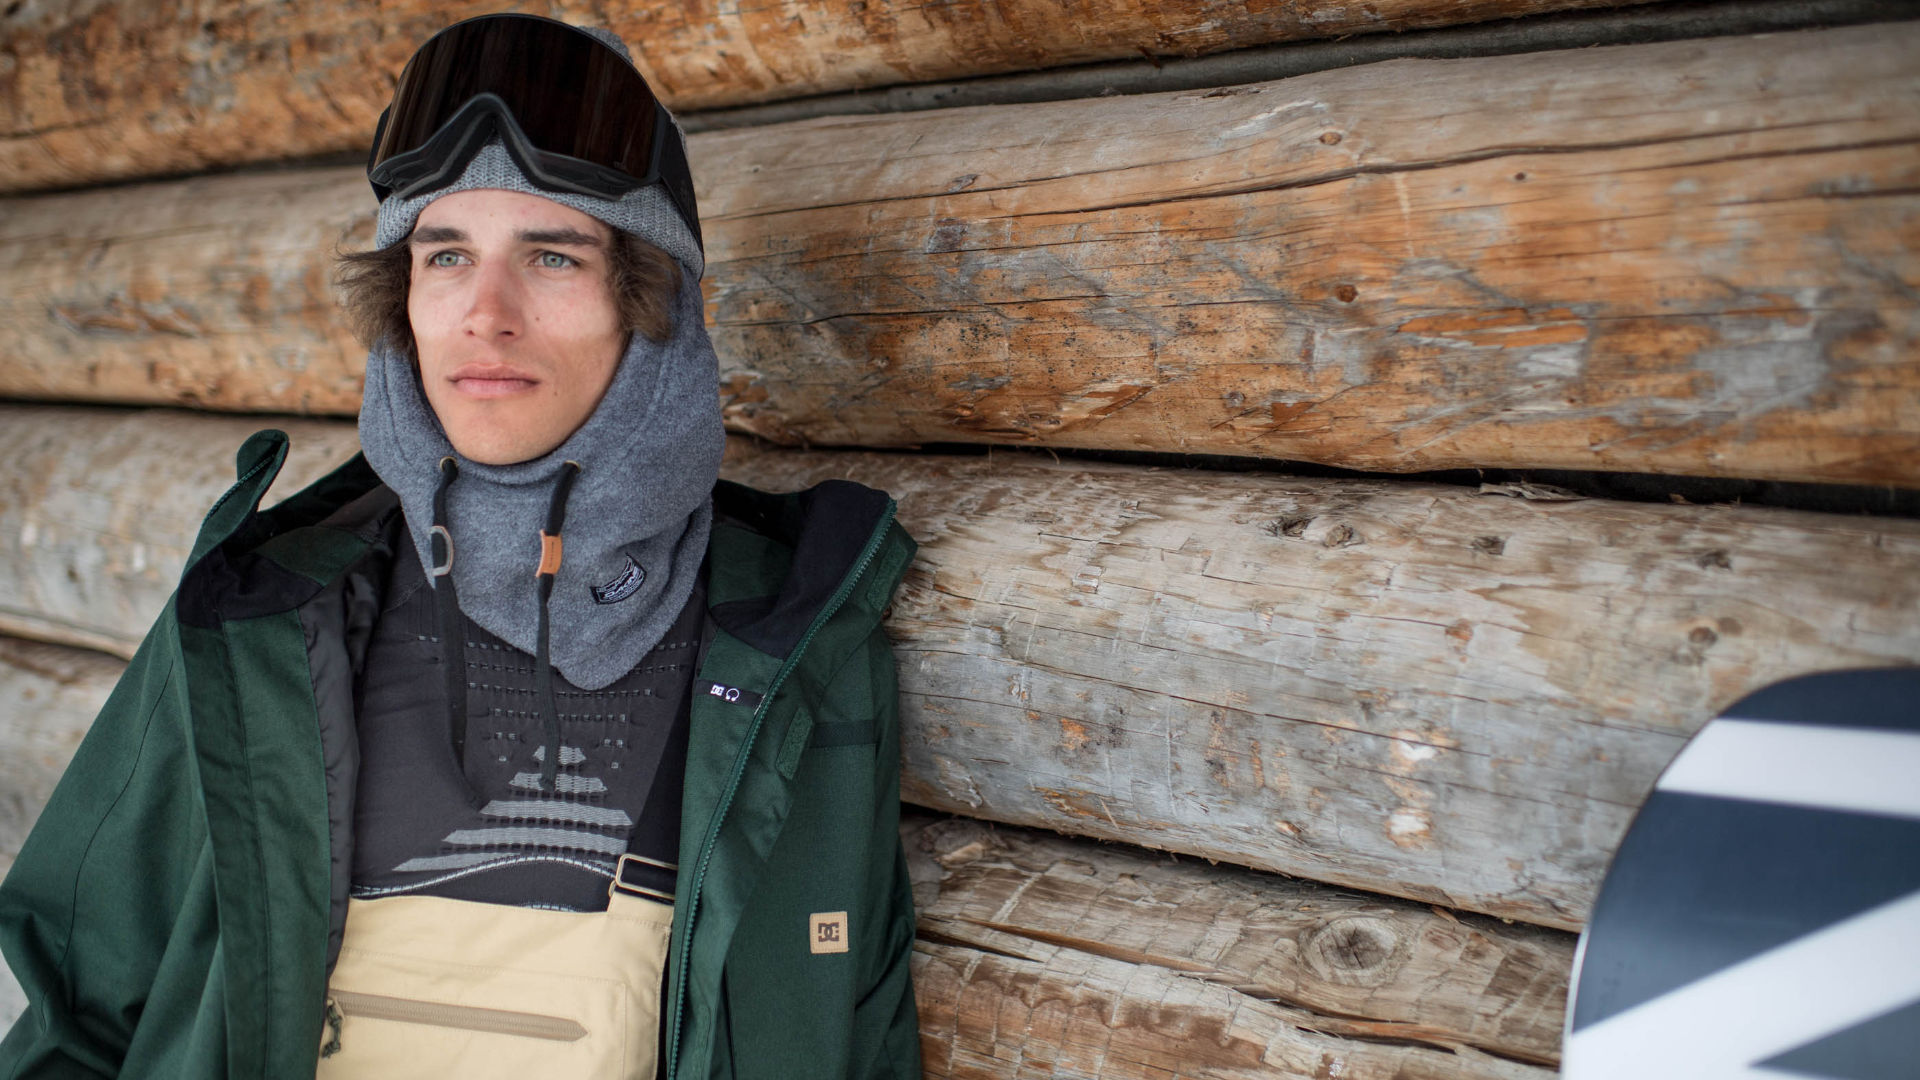 Male snowboarder staning outside in front of a hut with a medium insulation jacket